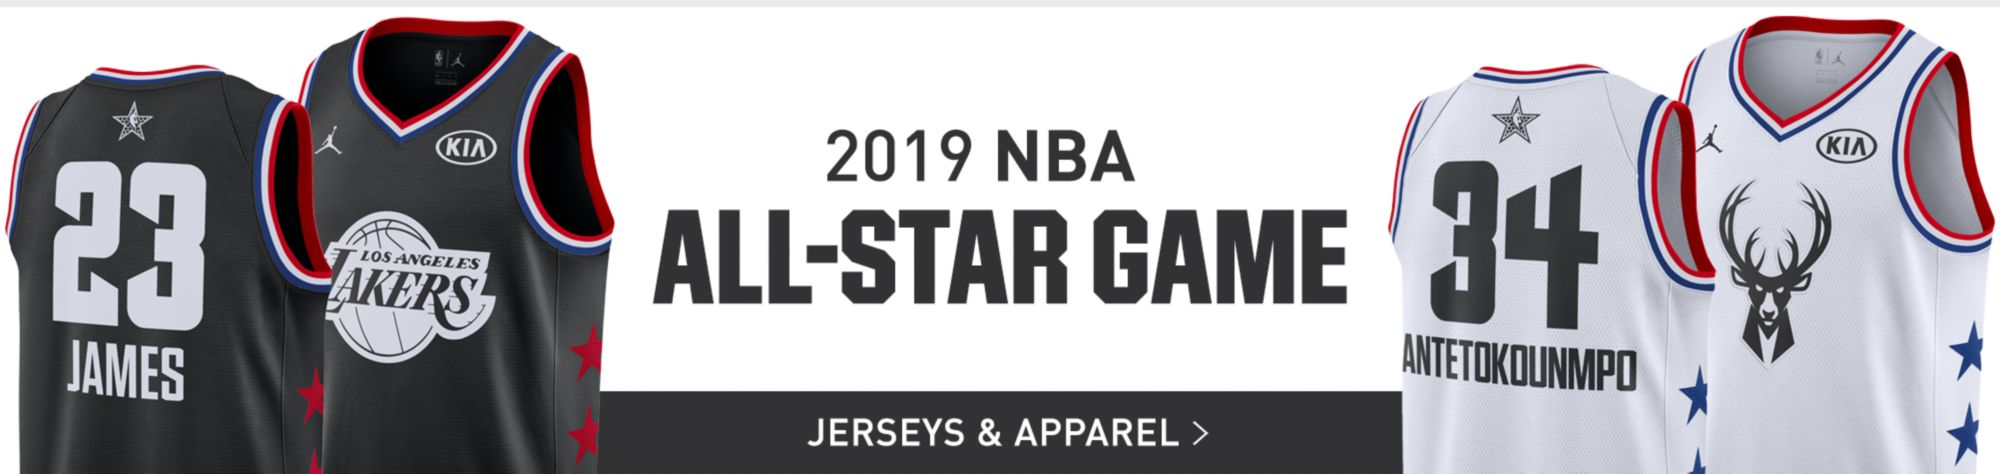 2019 NBA All Star Game